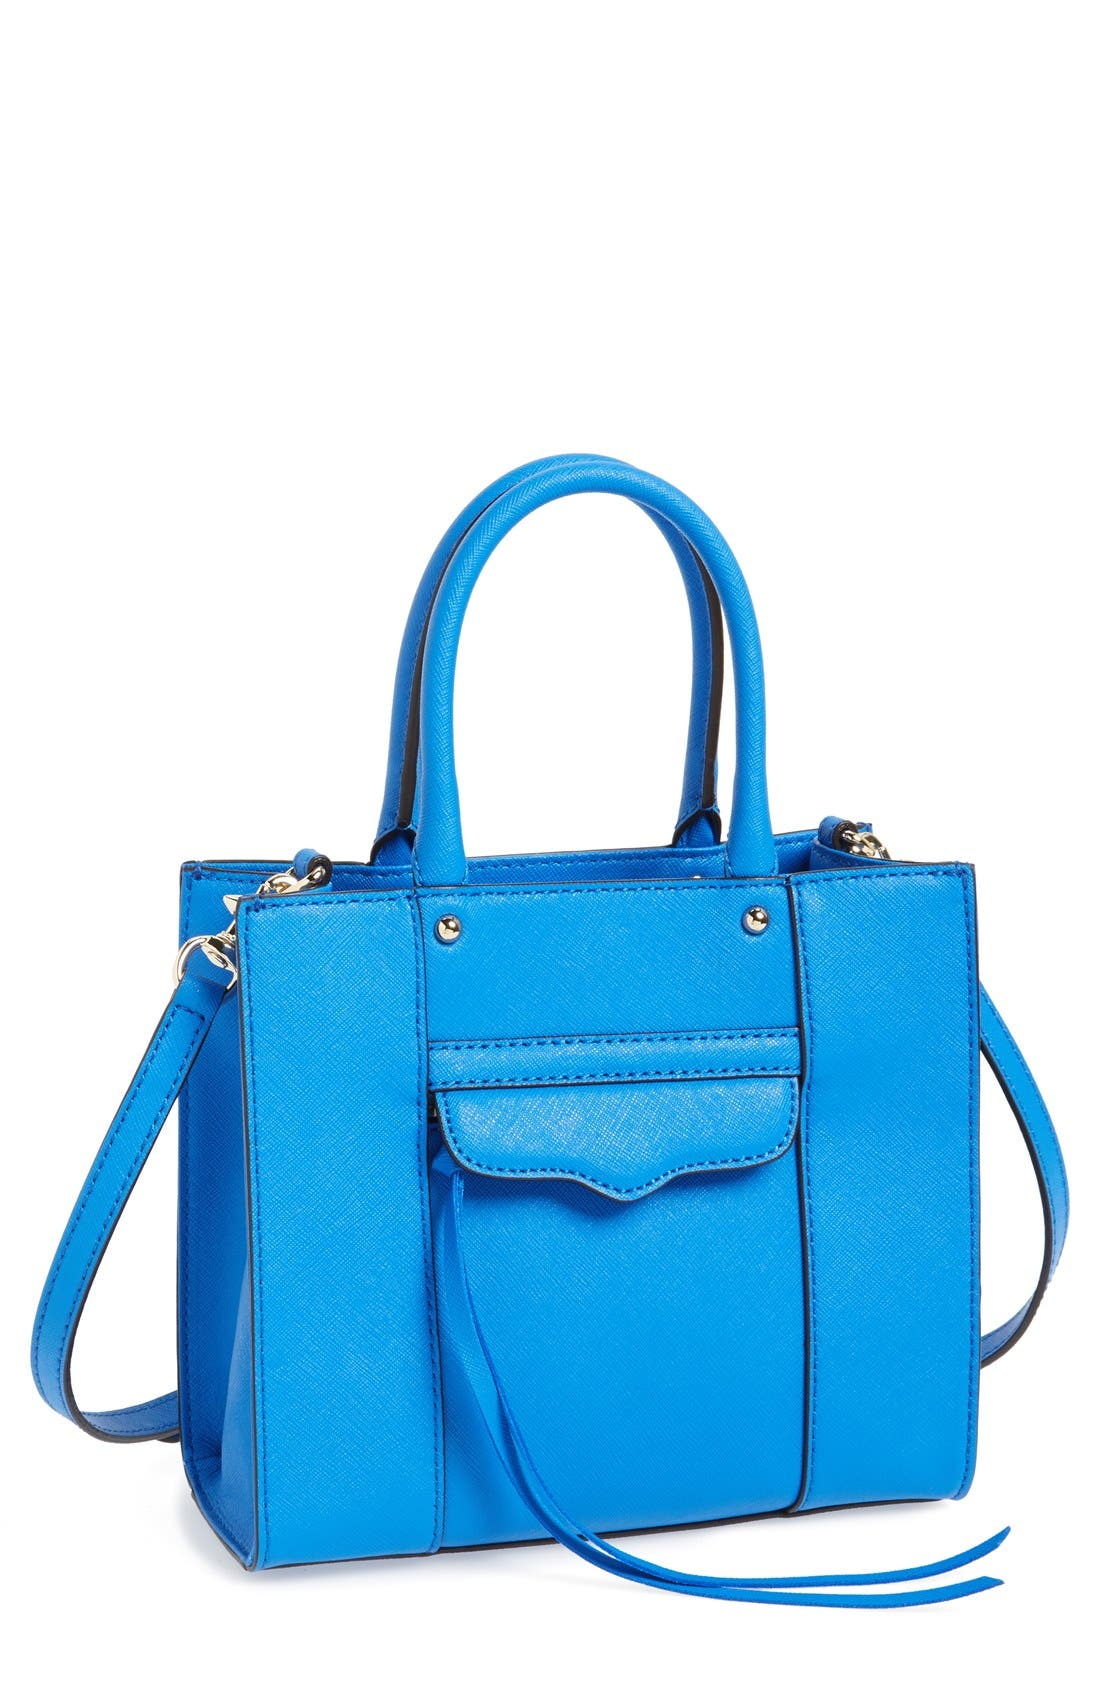 'Mini MAB Tote' Crossbody Bag,                             Main thumbnail 24, color,